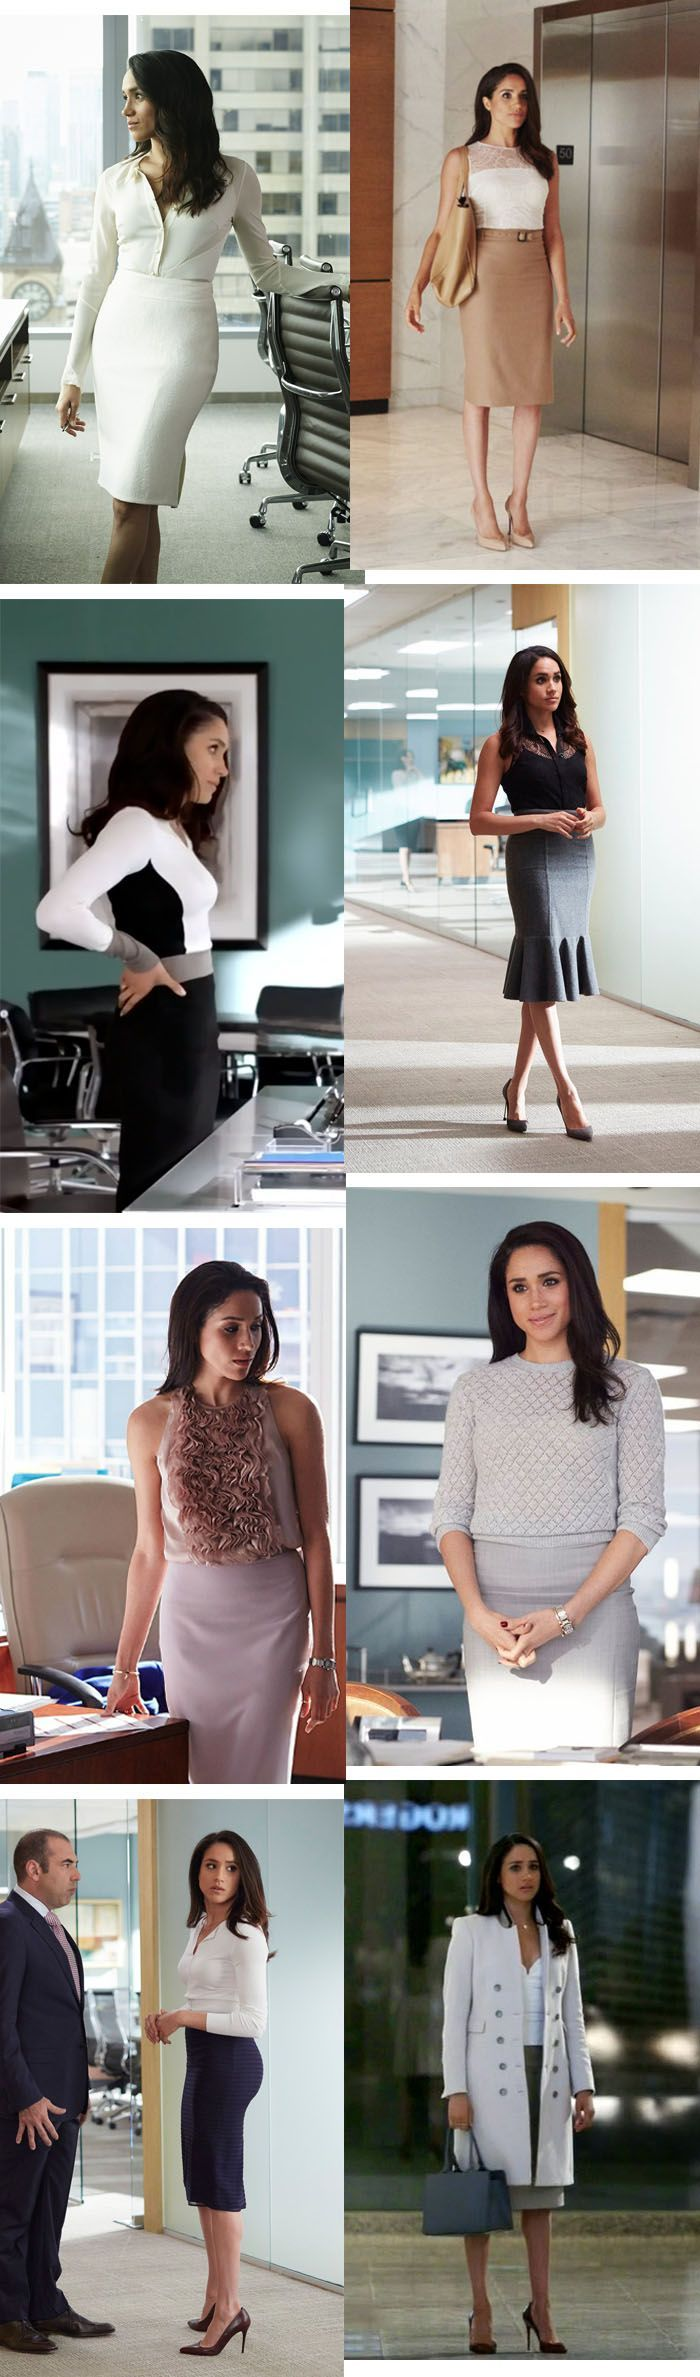 rachel zane looks suits                                                                                                                                                      More